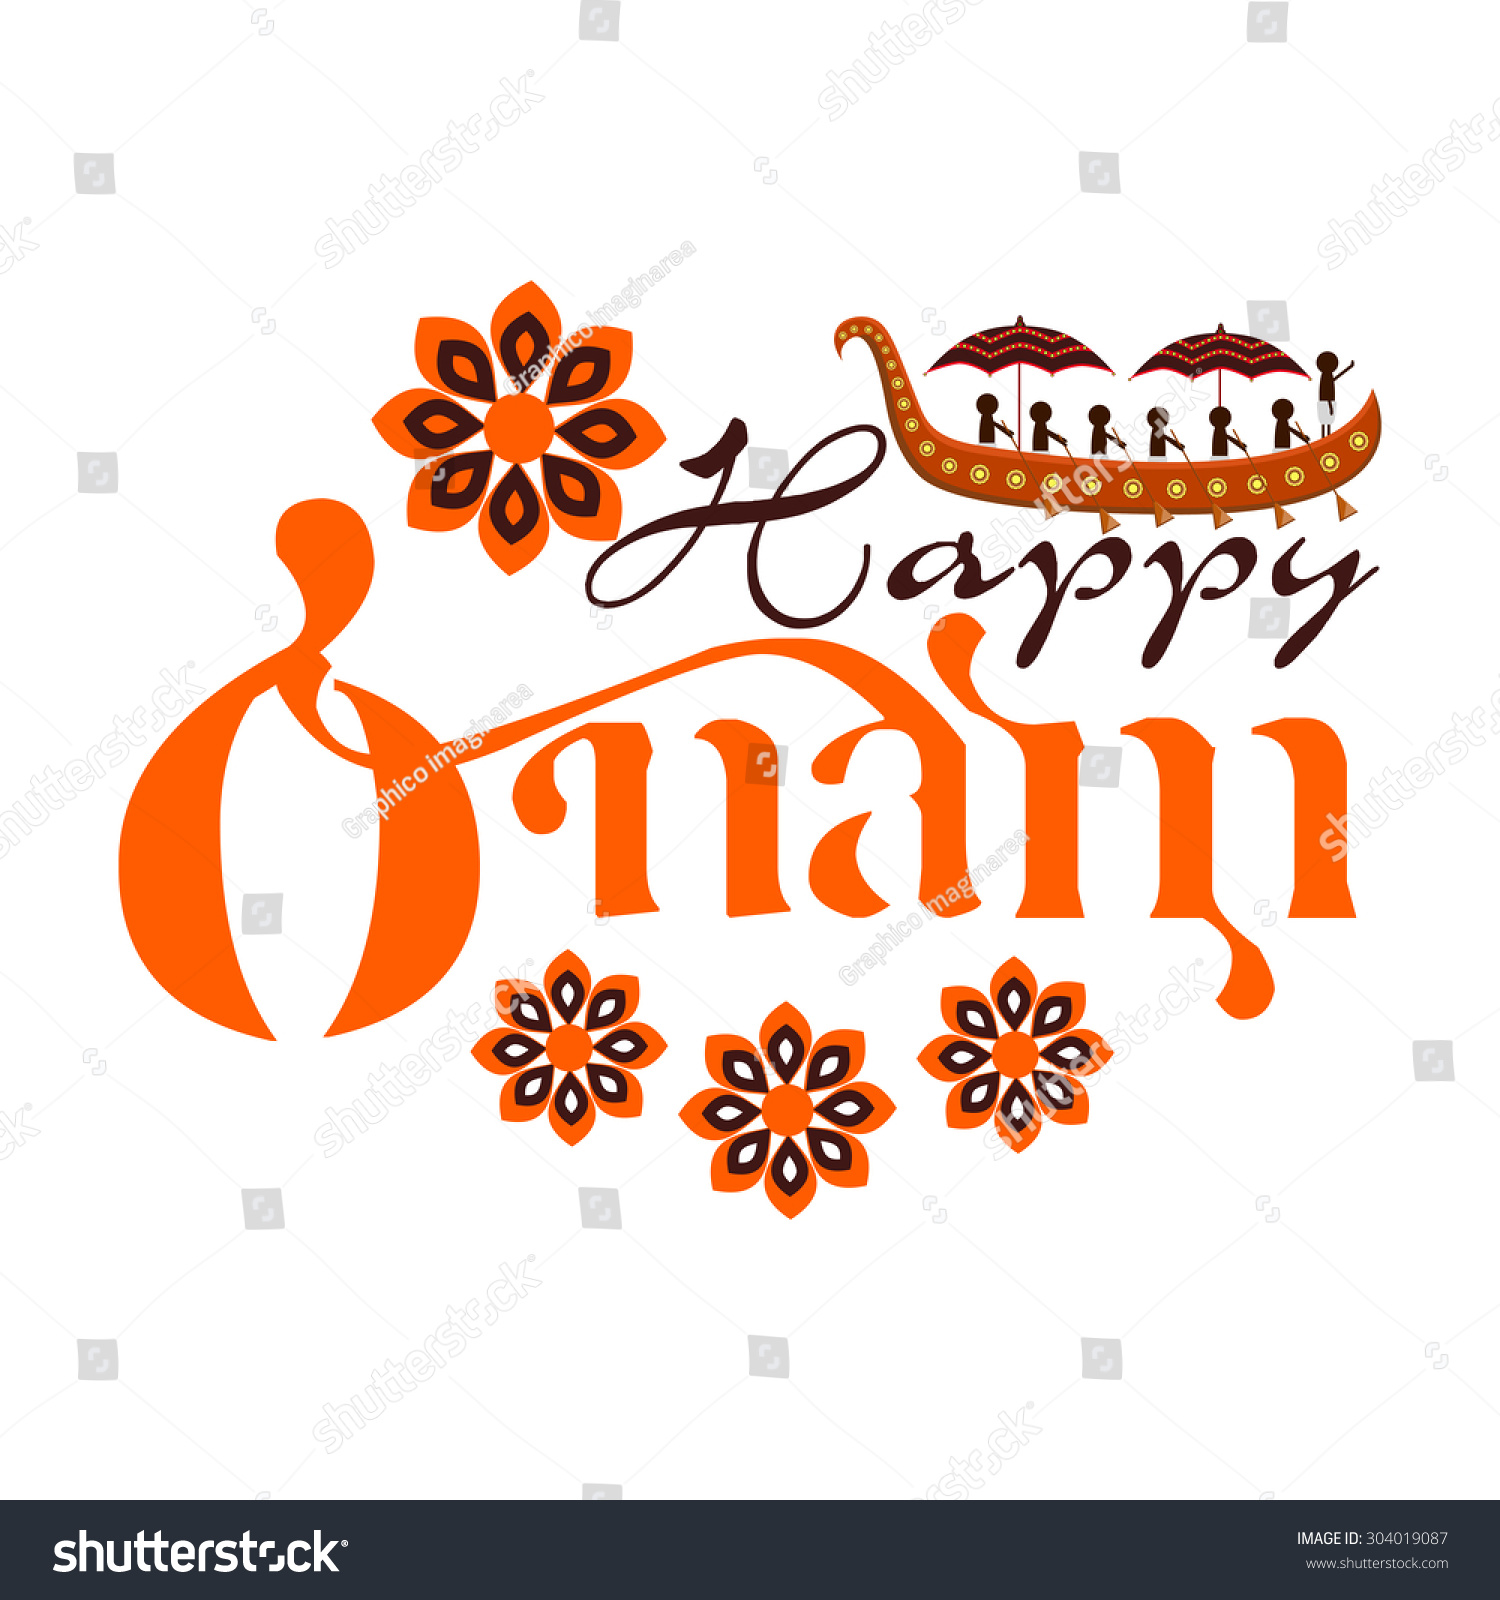 Happy Onam Sadya Images Pictu